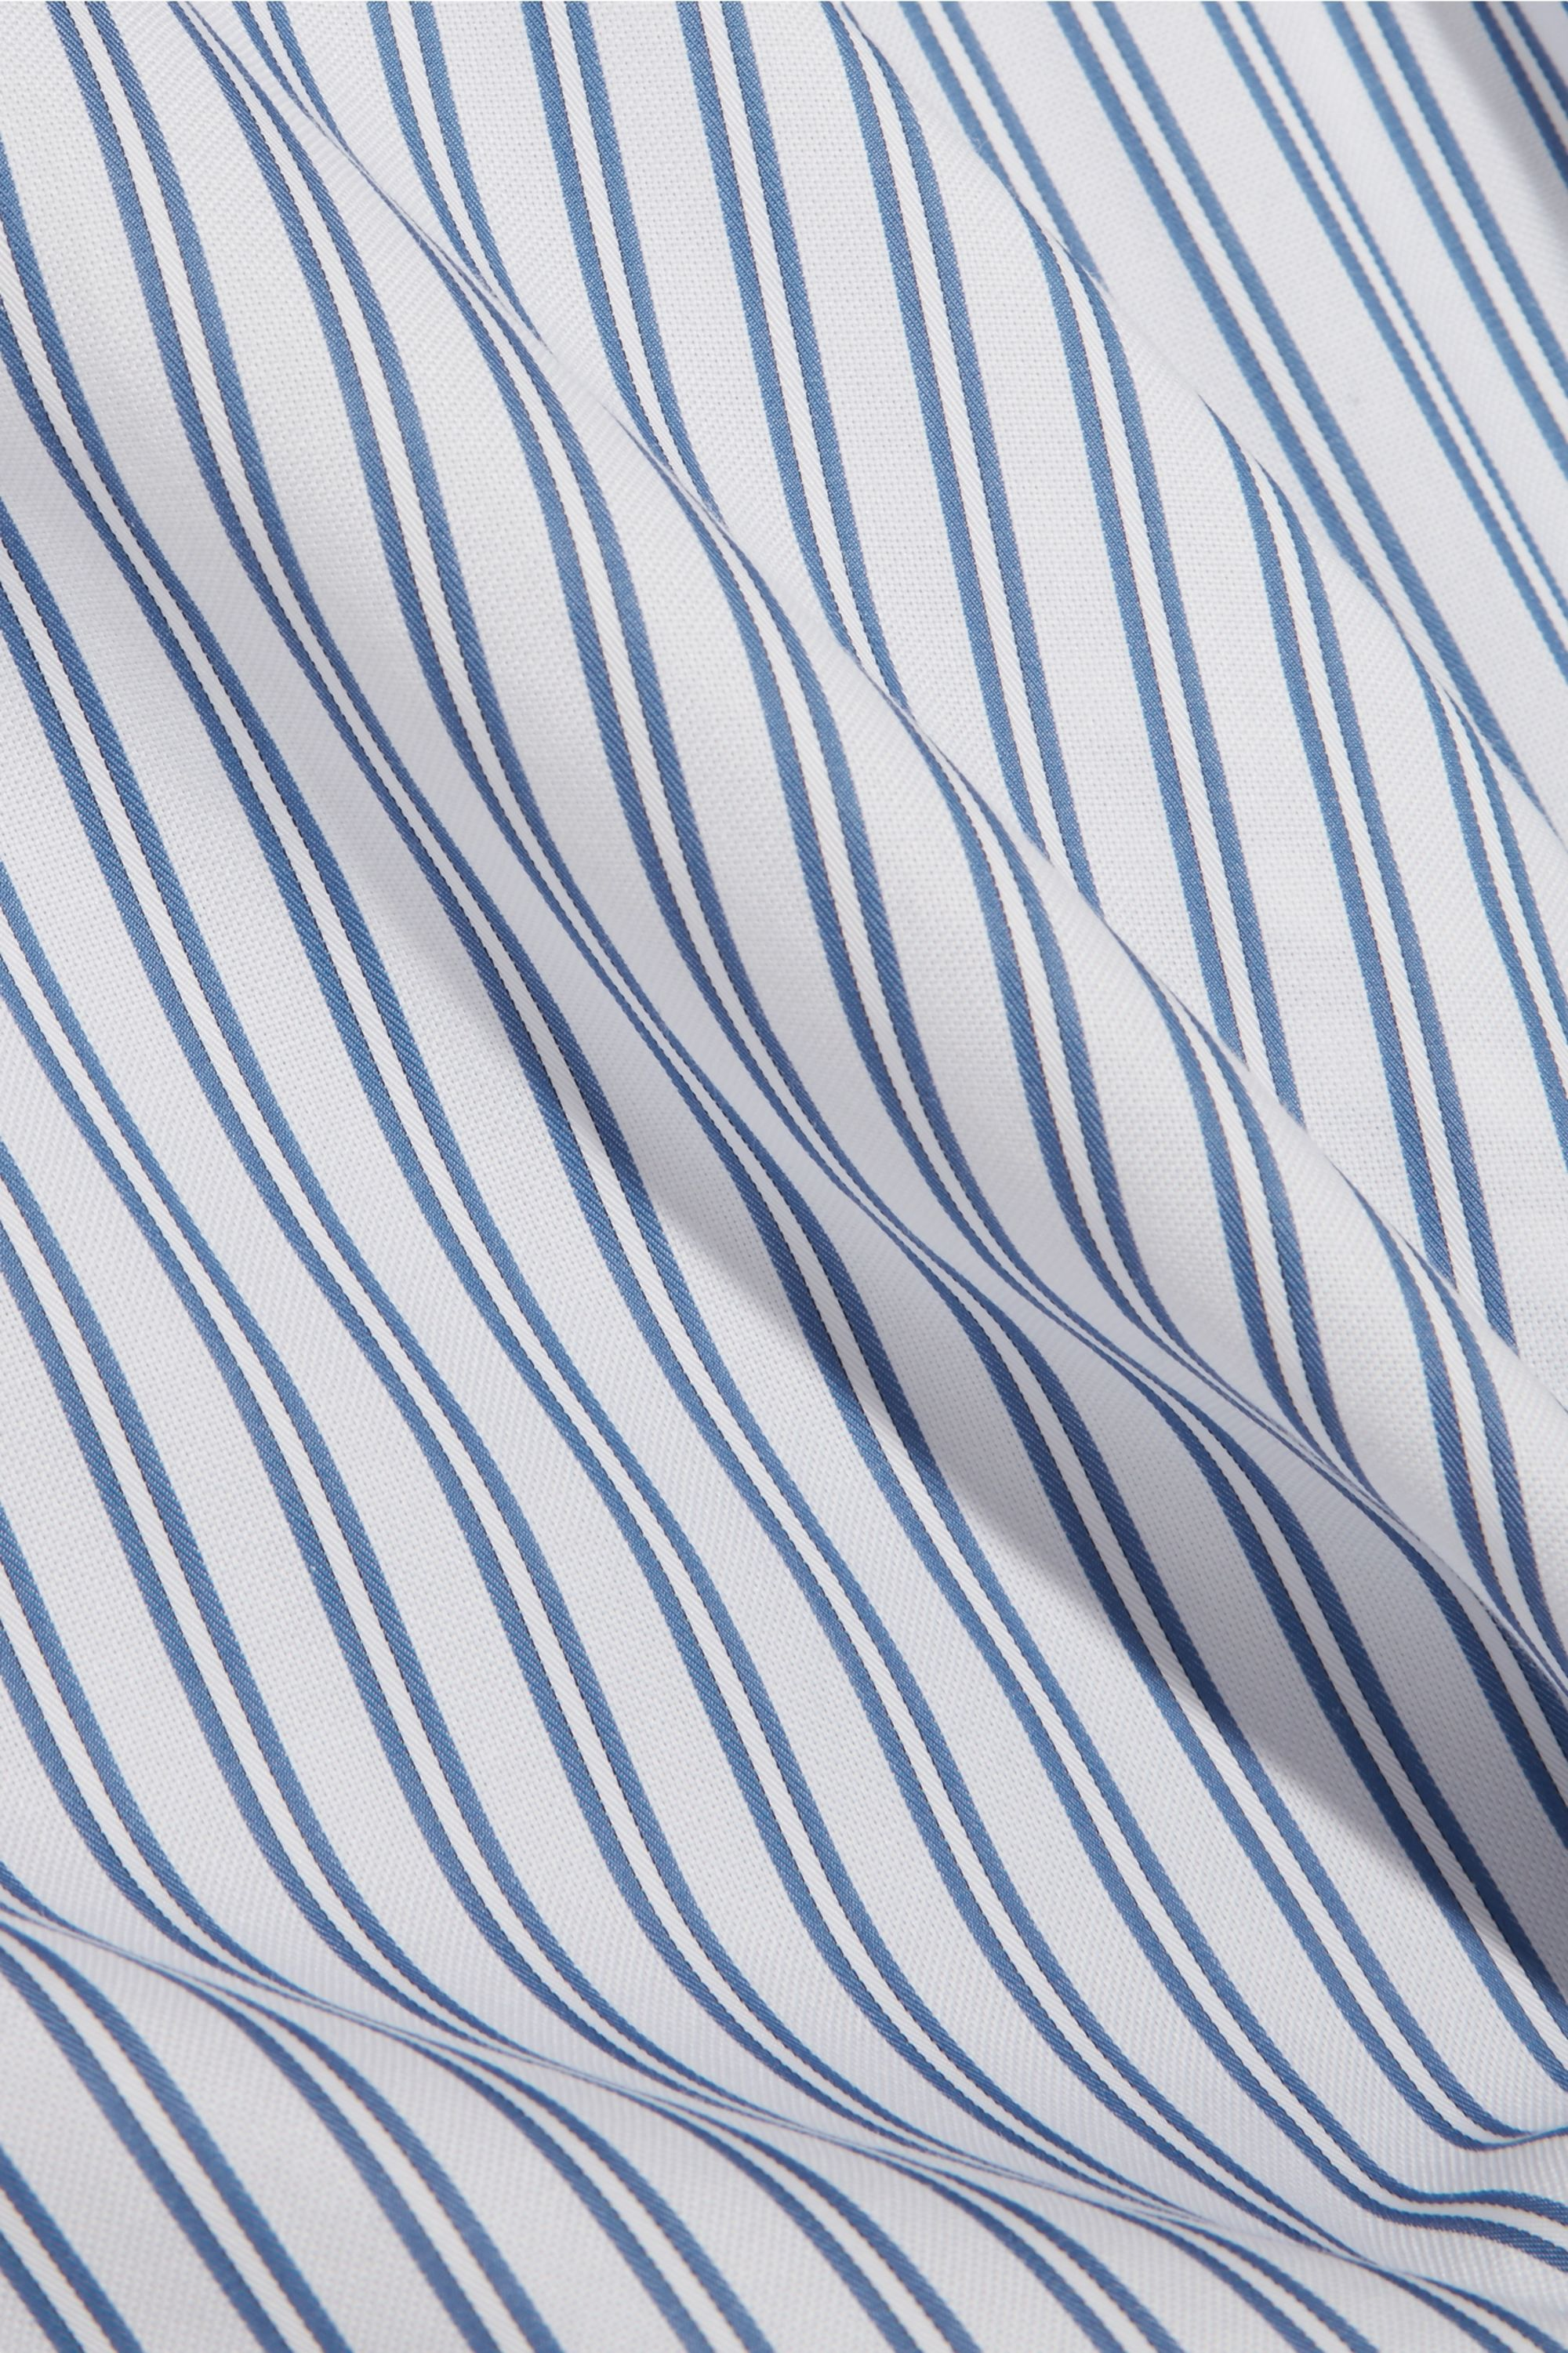 JW Anderson Knotted striped cotton shirt dress